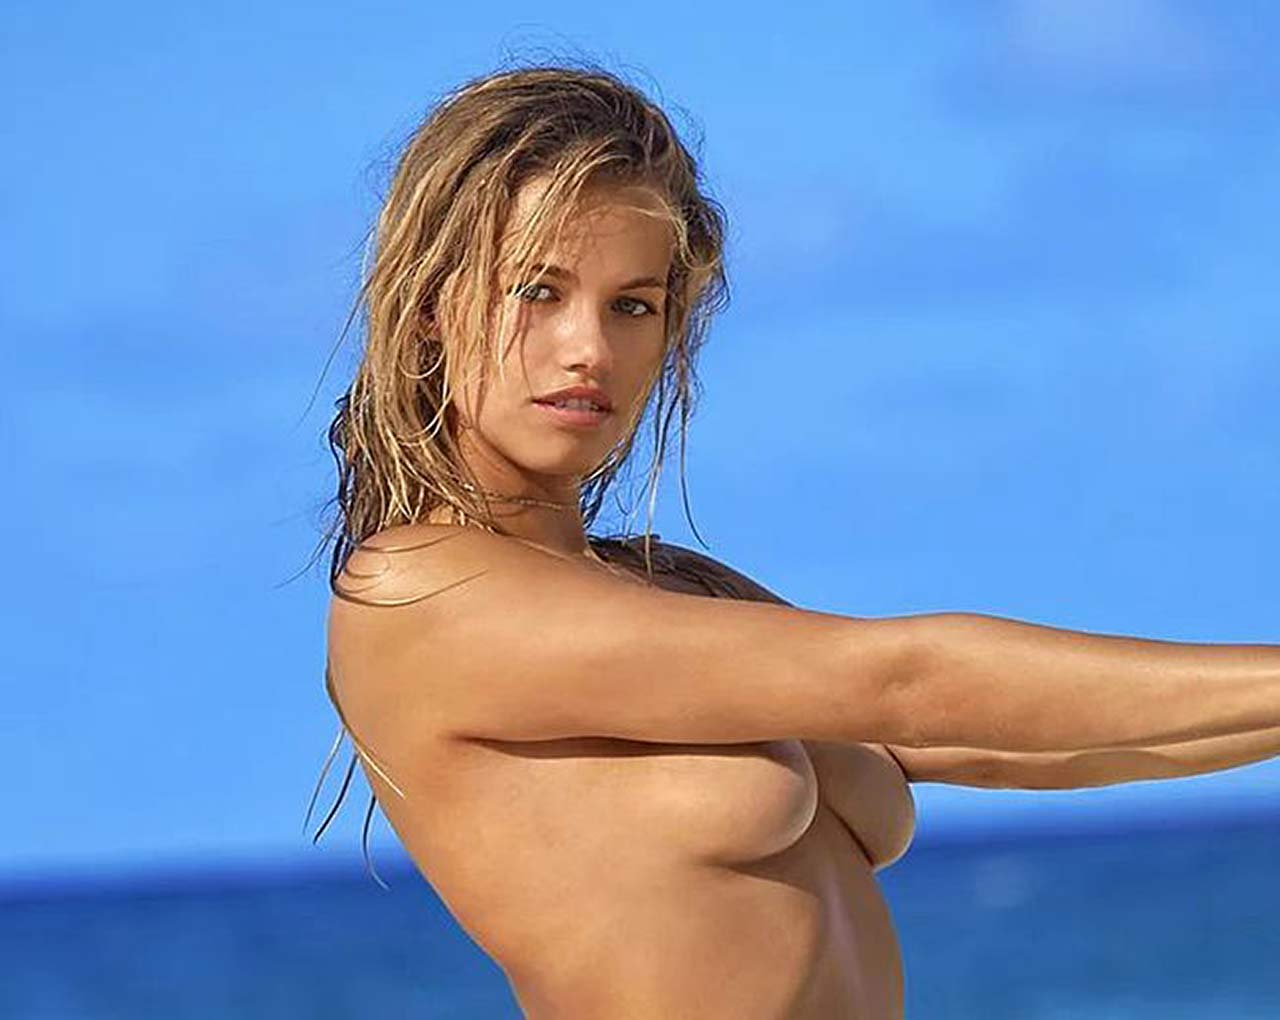 Tits Hailey Clauson nudes (24 foto and video), Topless, Sideboobs, Instagram, butt 2020